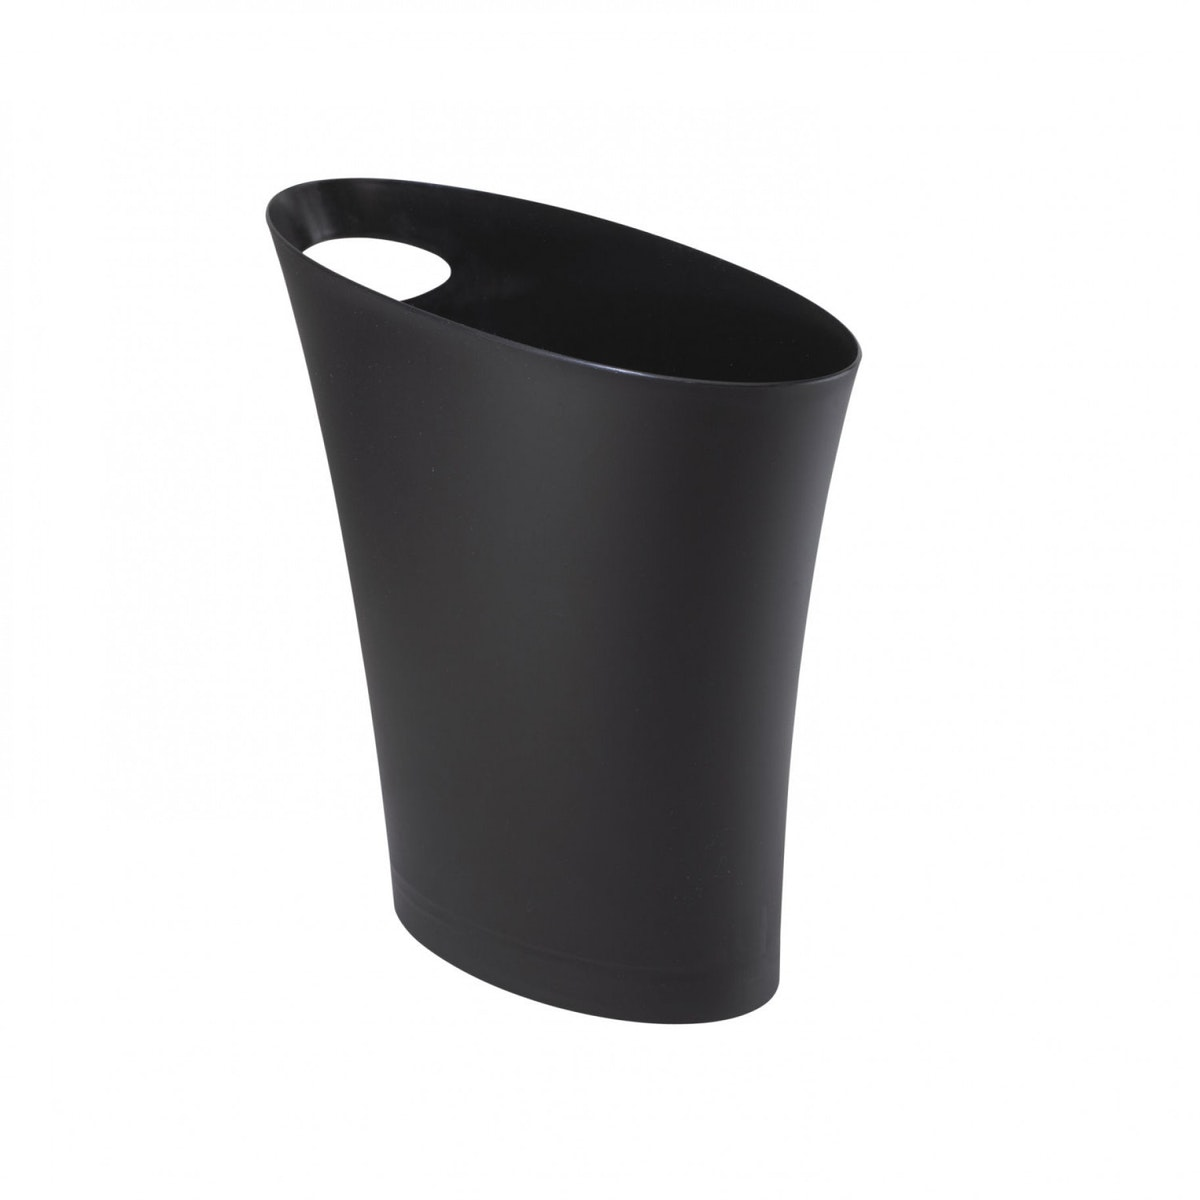 buy trash bins online in singapore hipvan